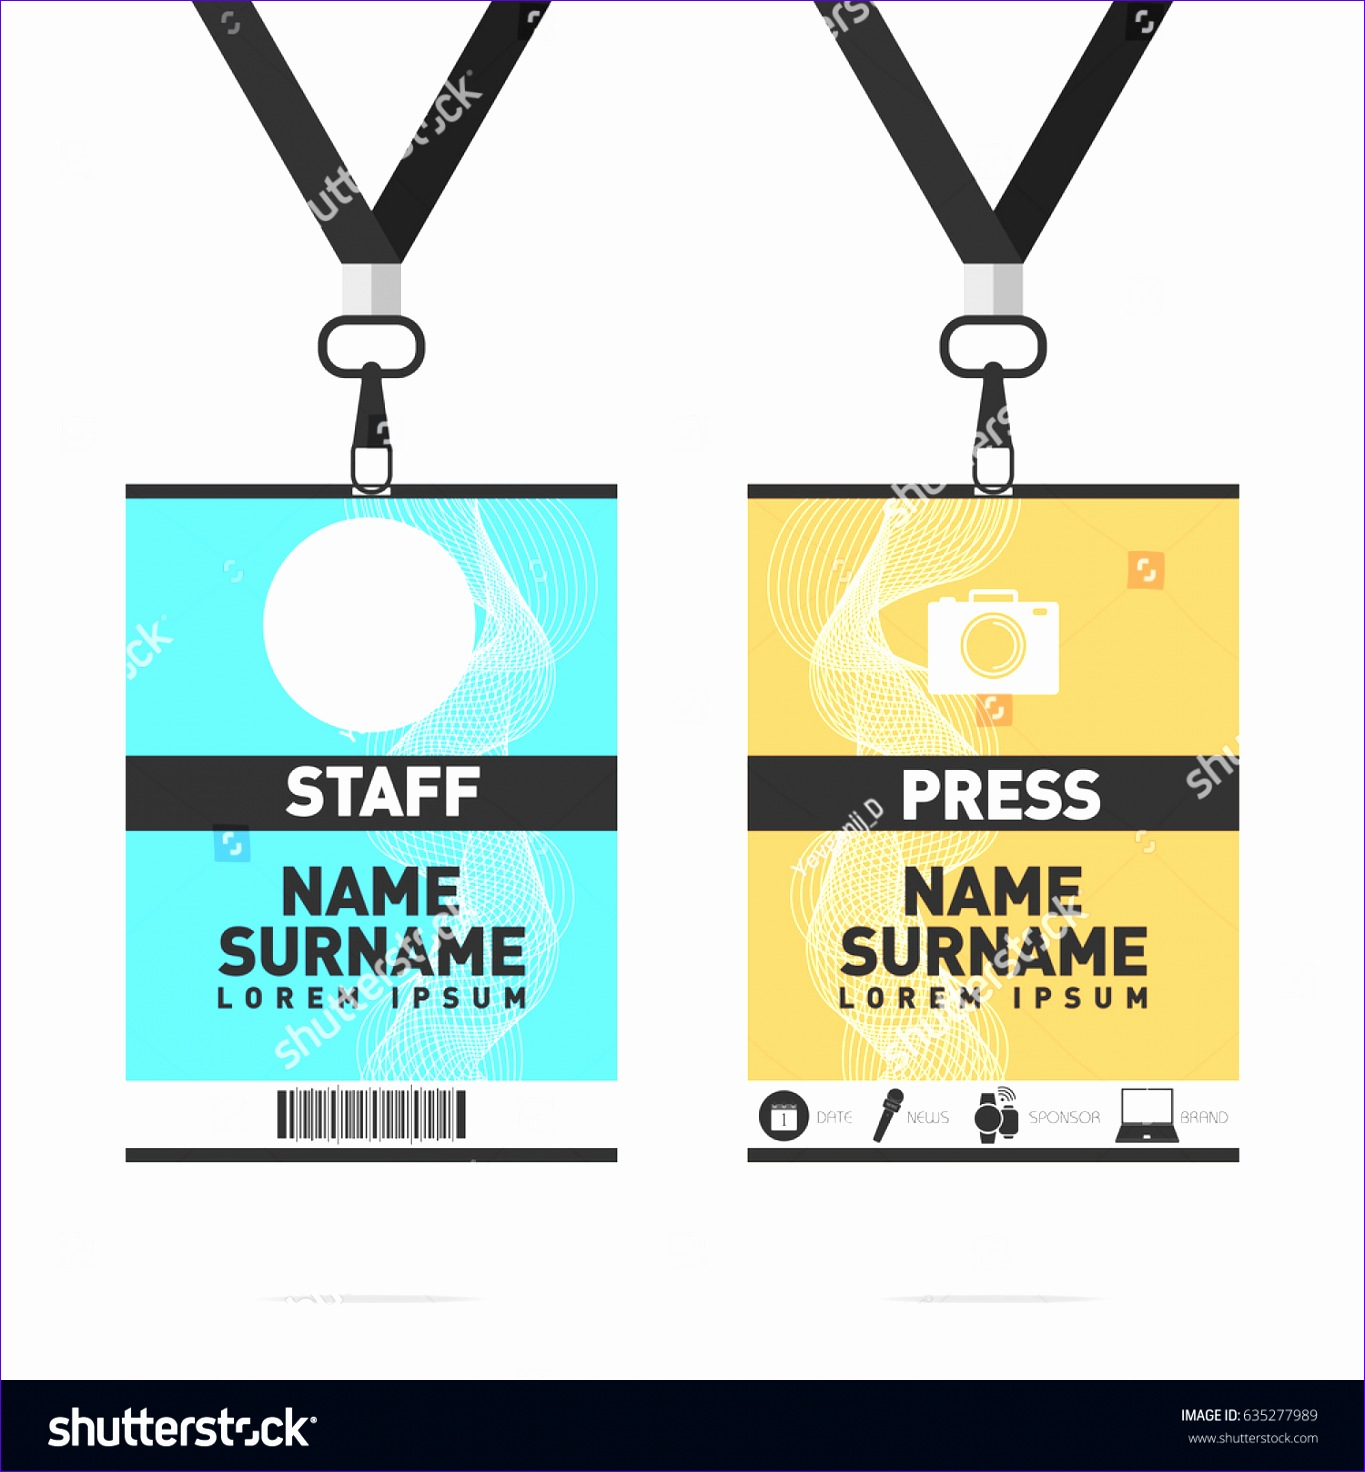 Employees Photo Id Badges Template Scsn Awesome Event Staff Press - Event badge template